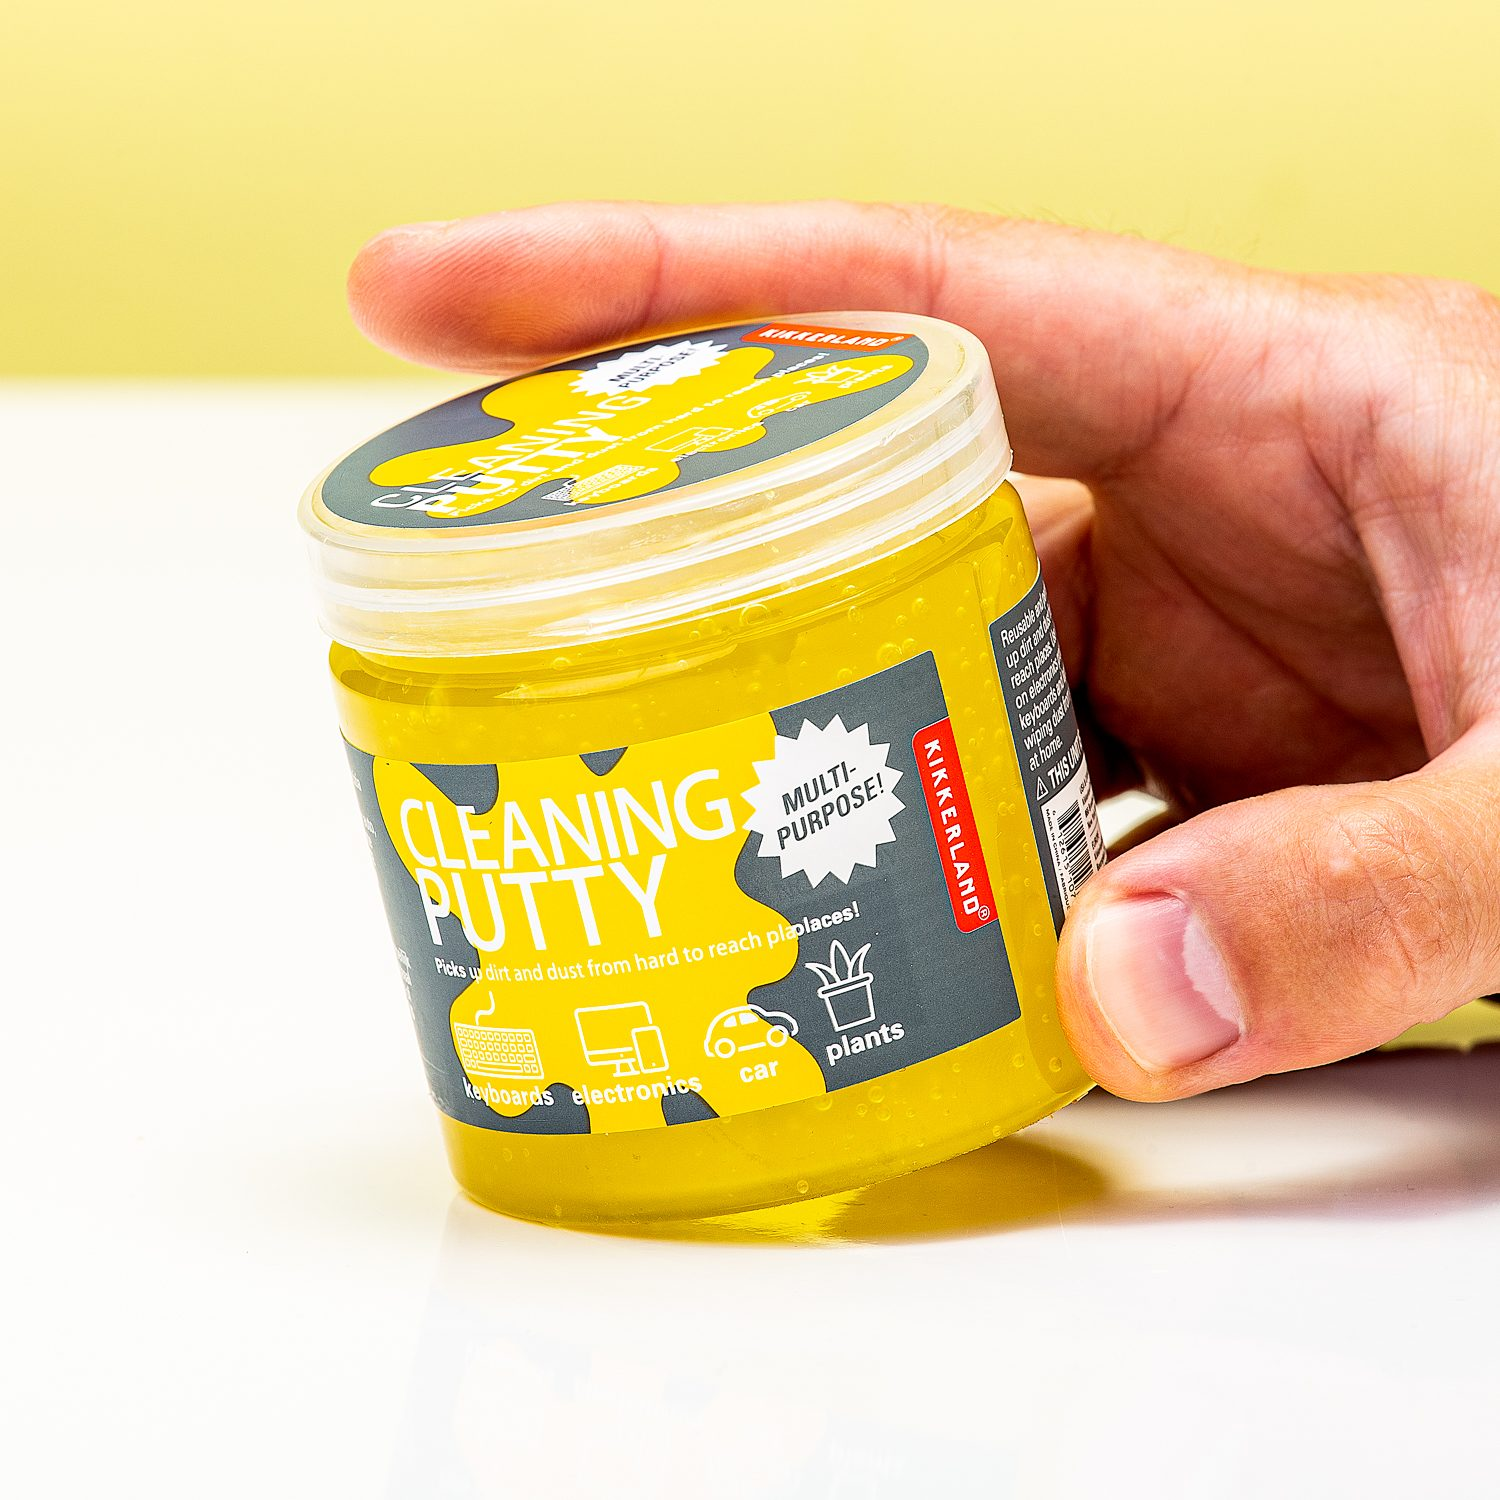 Cleaning Putty